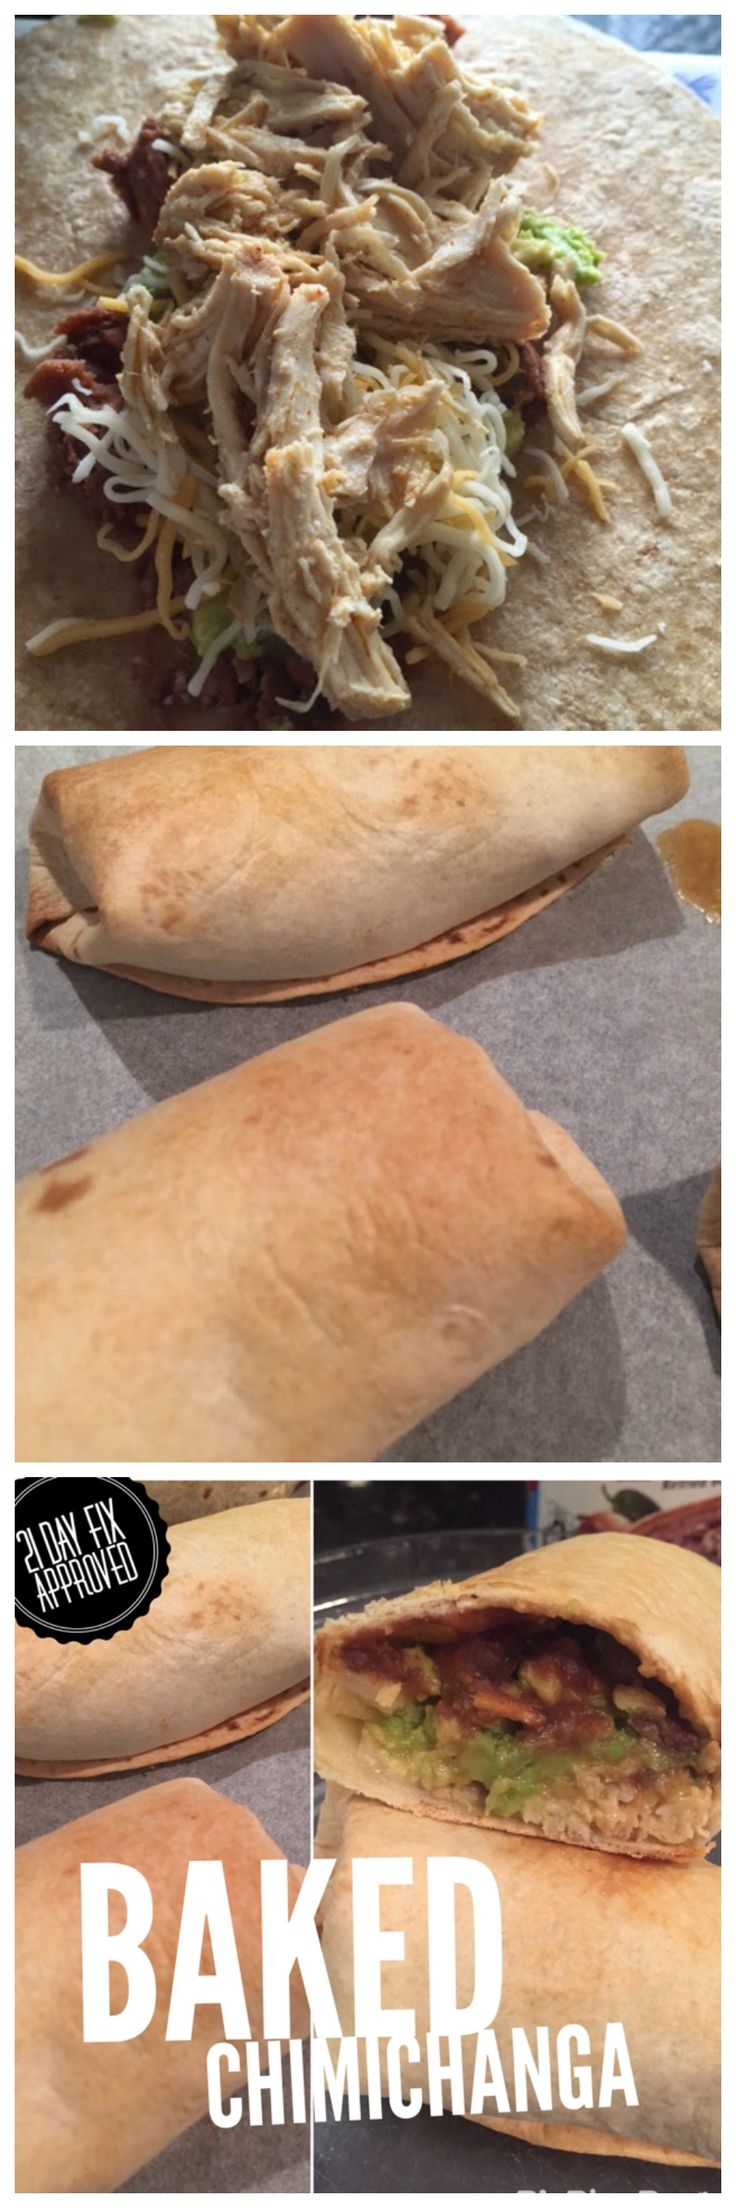 Baked Chimichangas. So delicious and no guilt! 21 Day Fix and Family Approved.